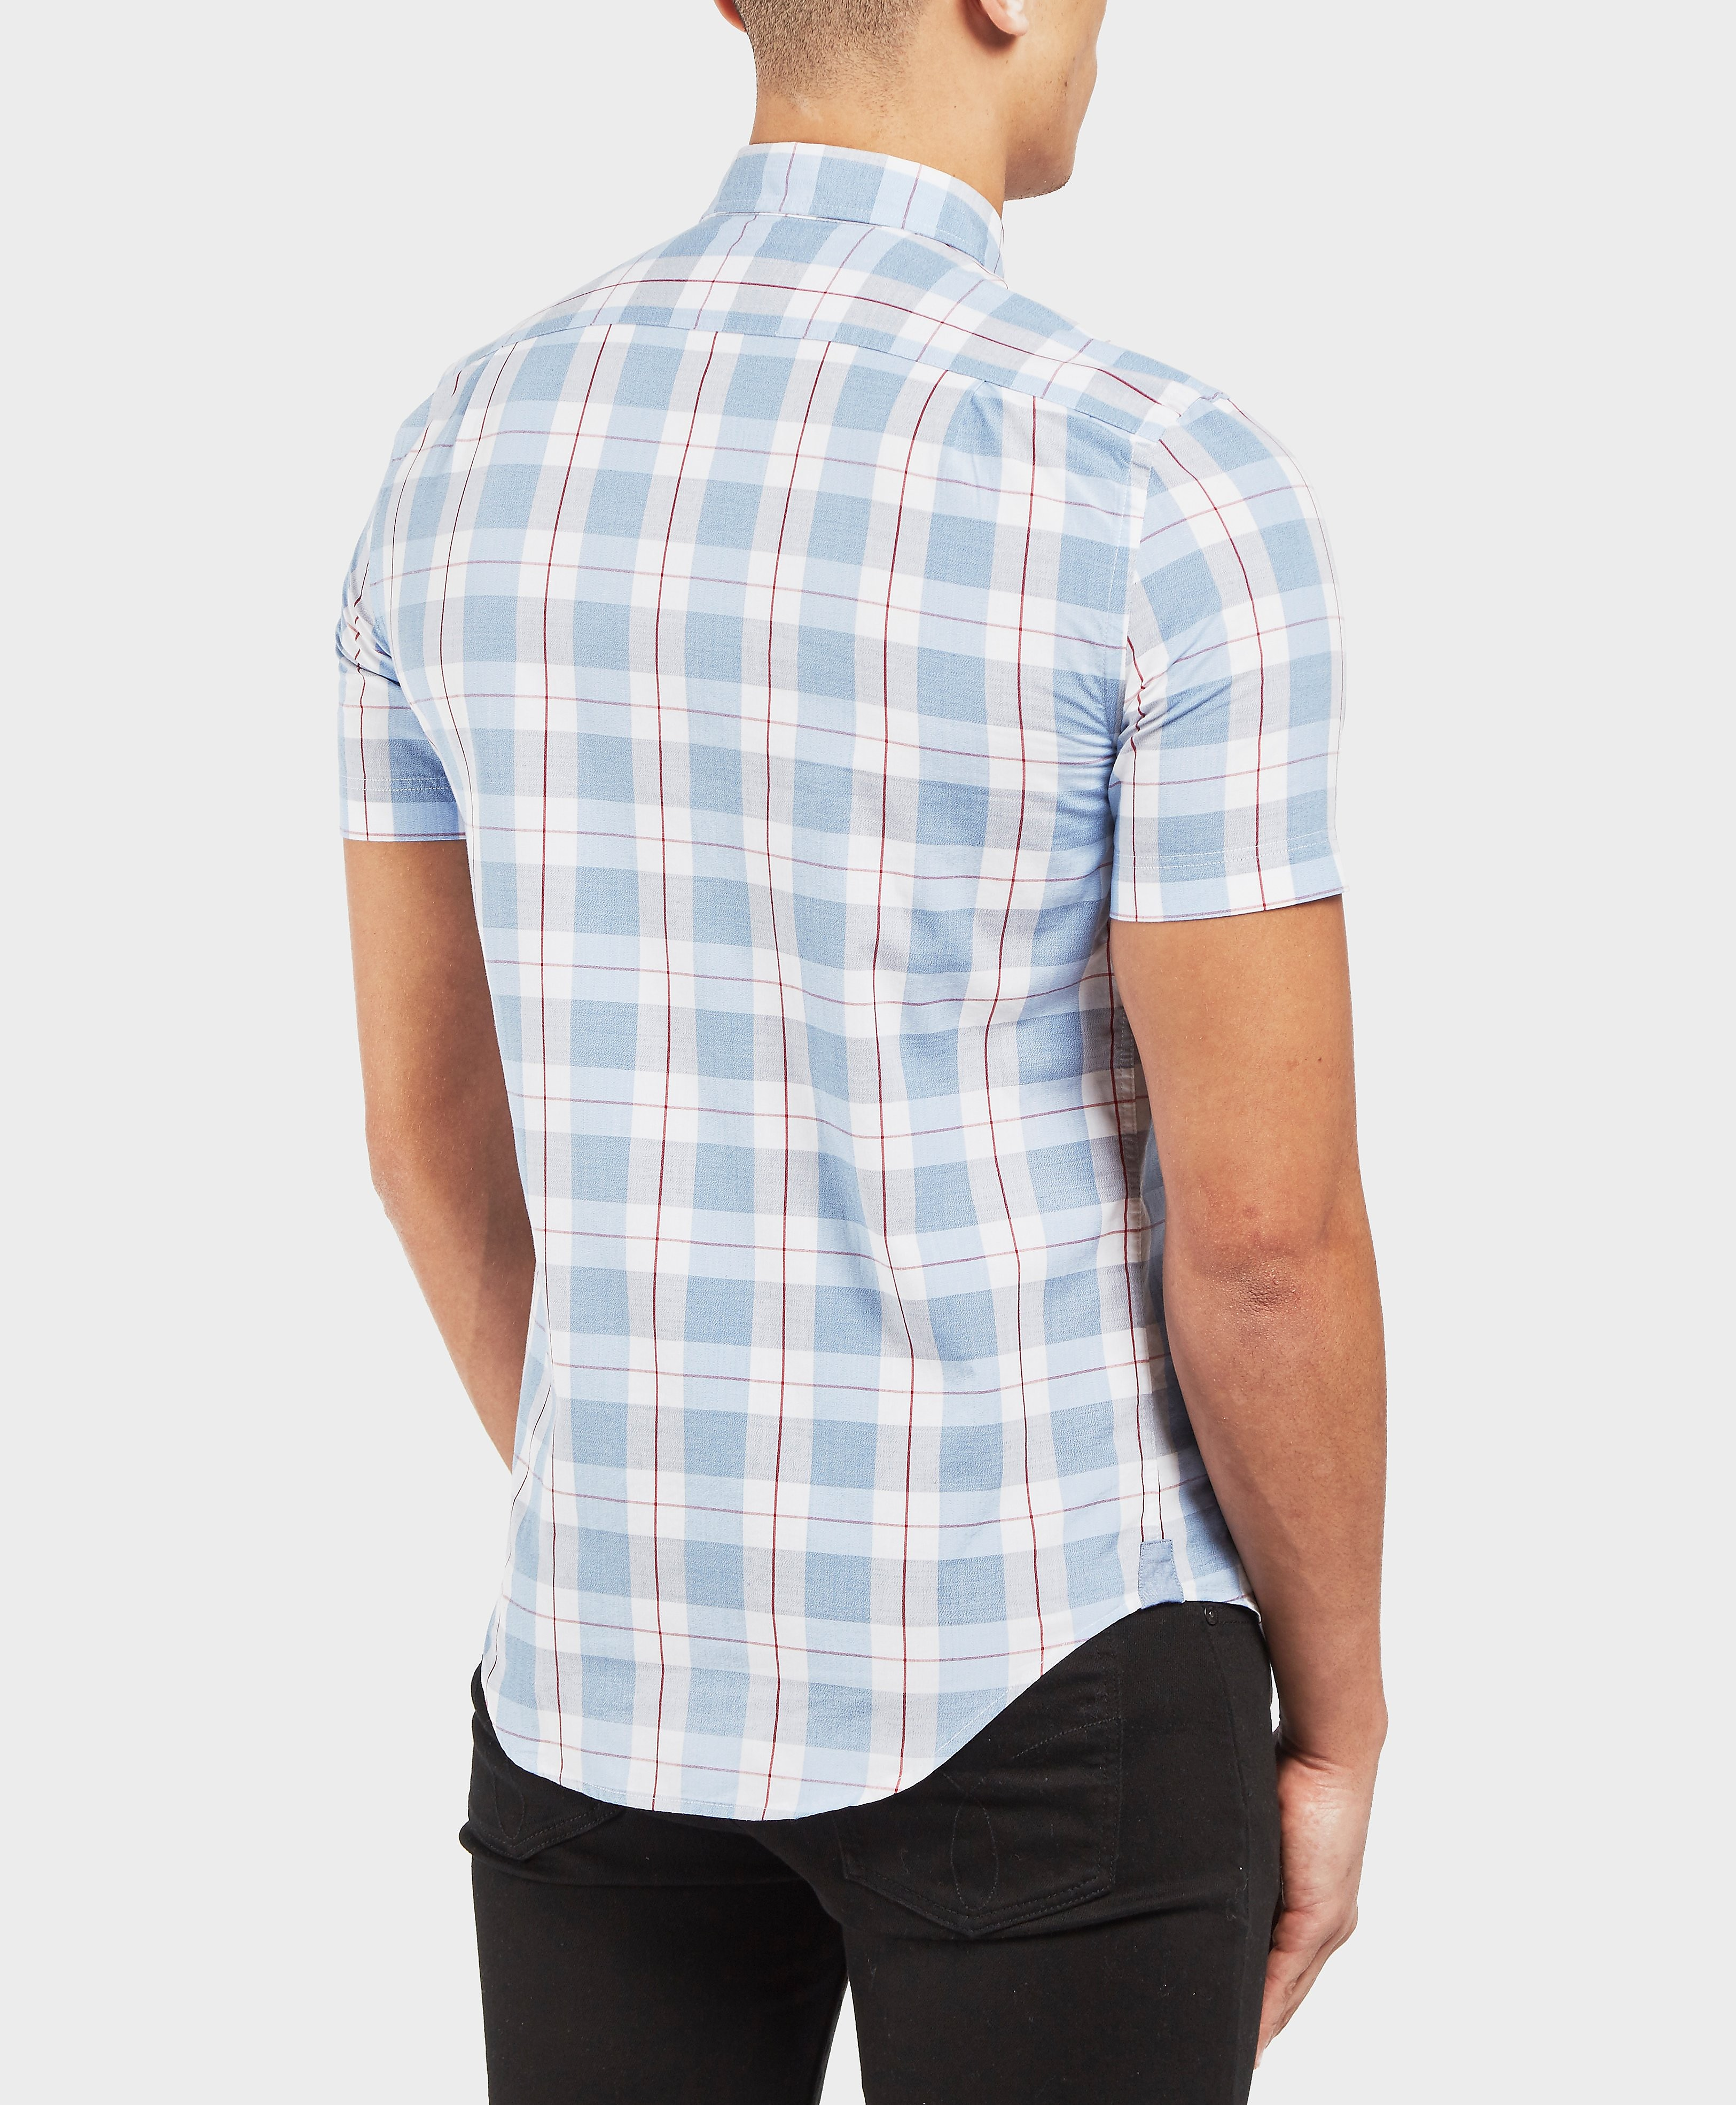 Lacoste Block Check Short Sleeve Shirt